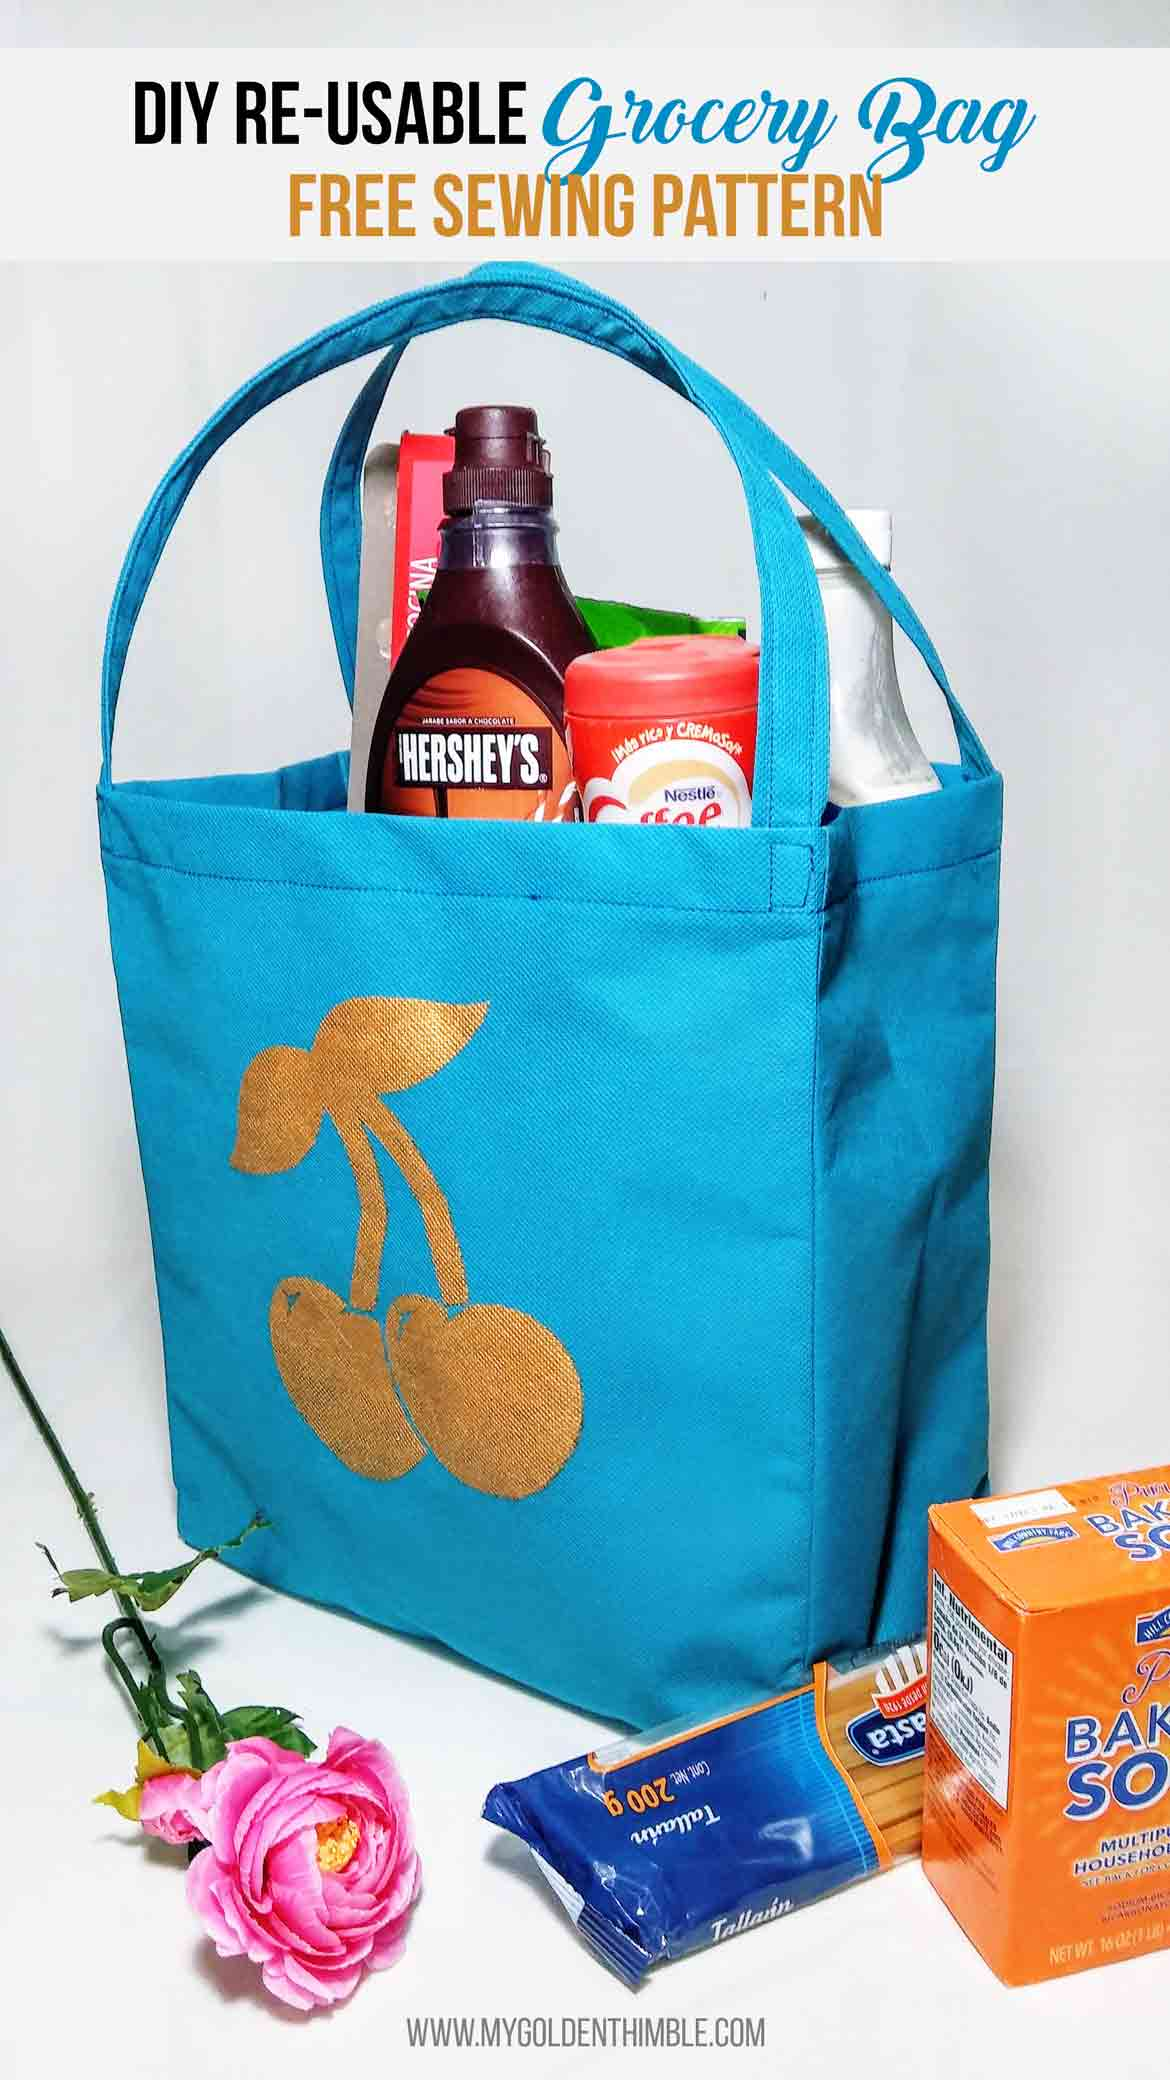 Free reusable grocery bag sewing pattern